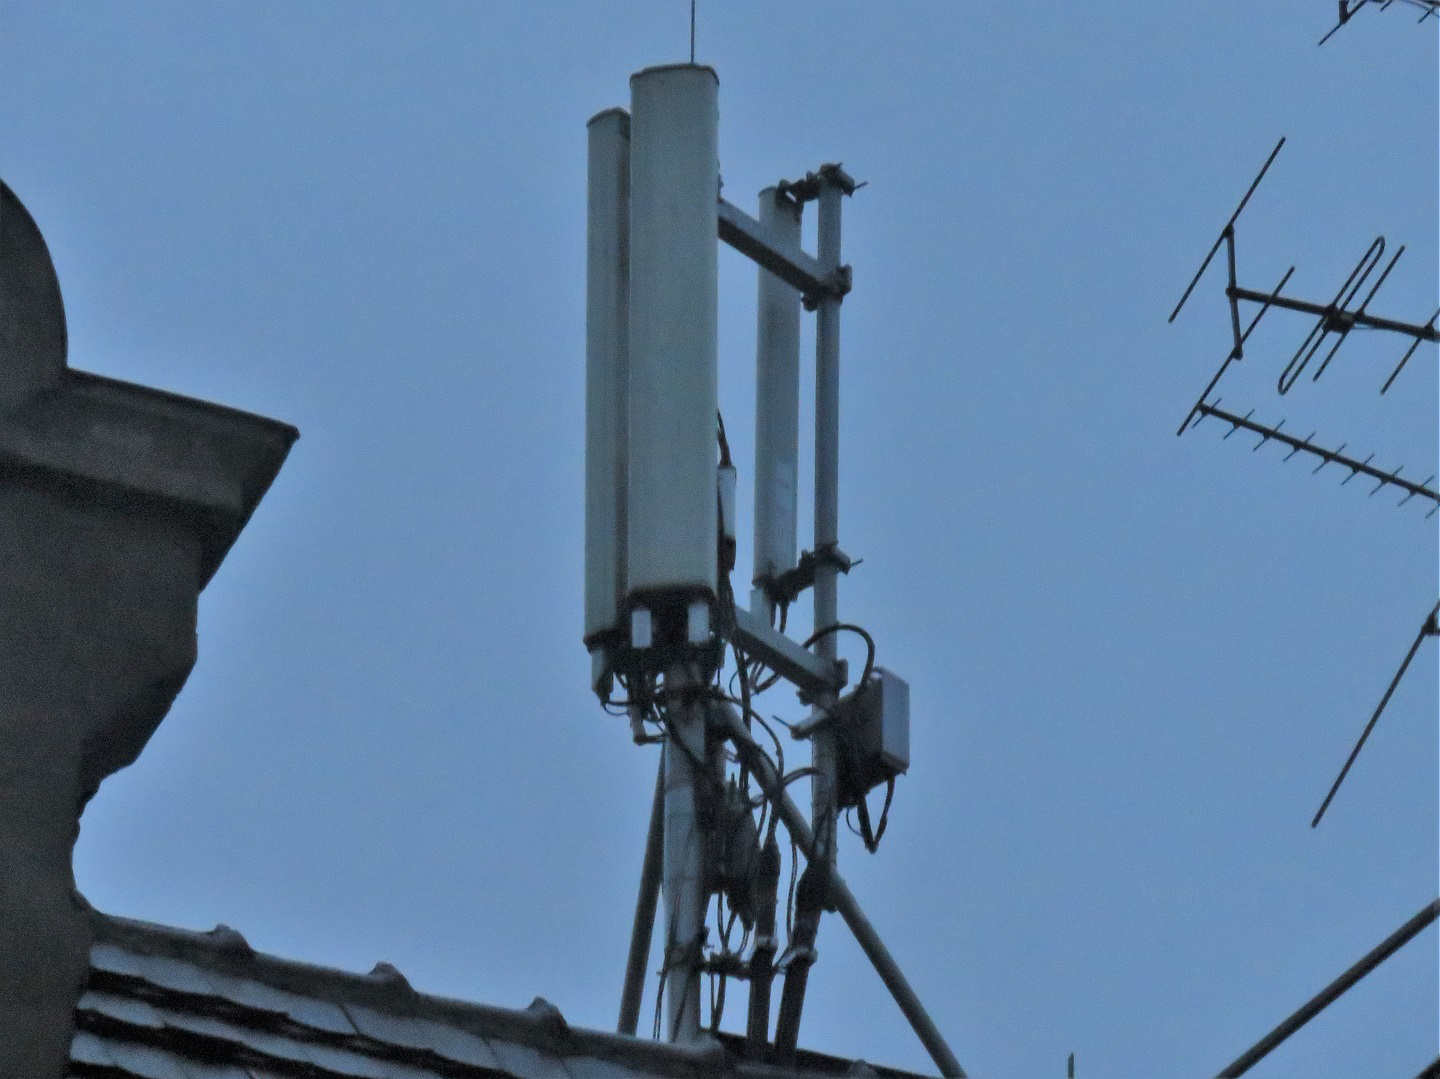 Plus triple 4G carrier site with various Ericsson RRUs, Kathrein dual and single band antennas.